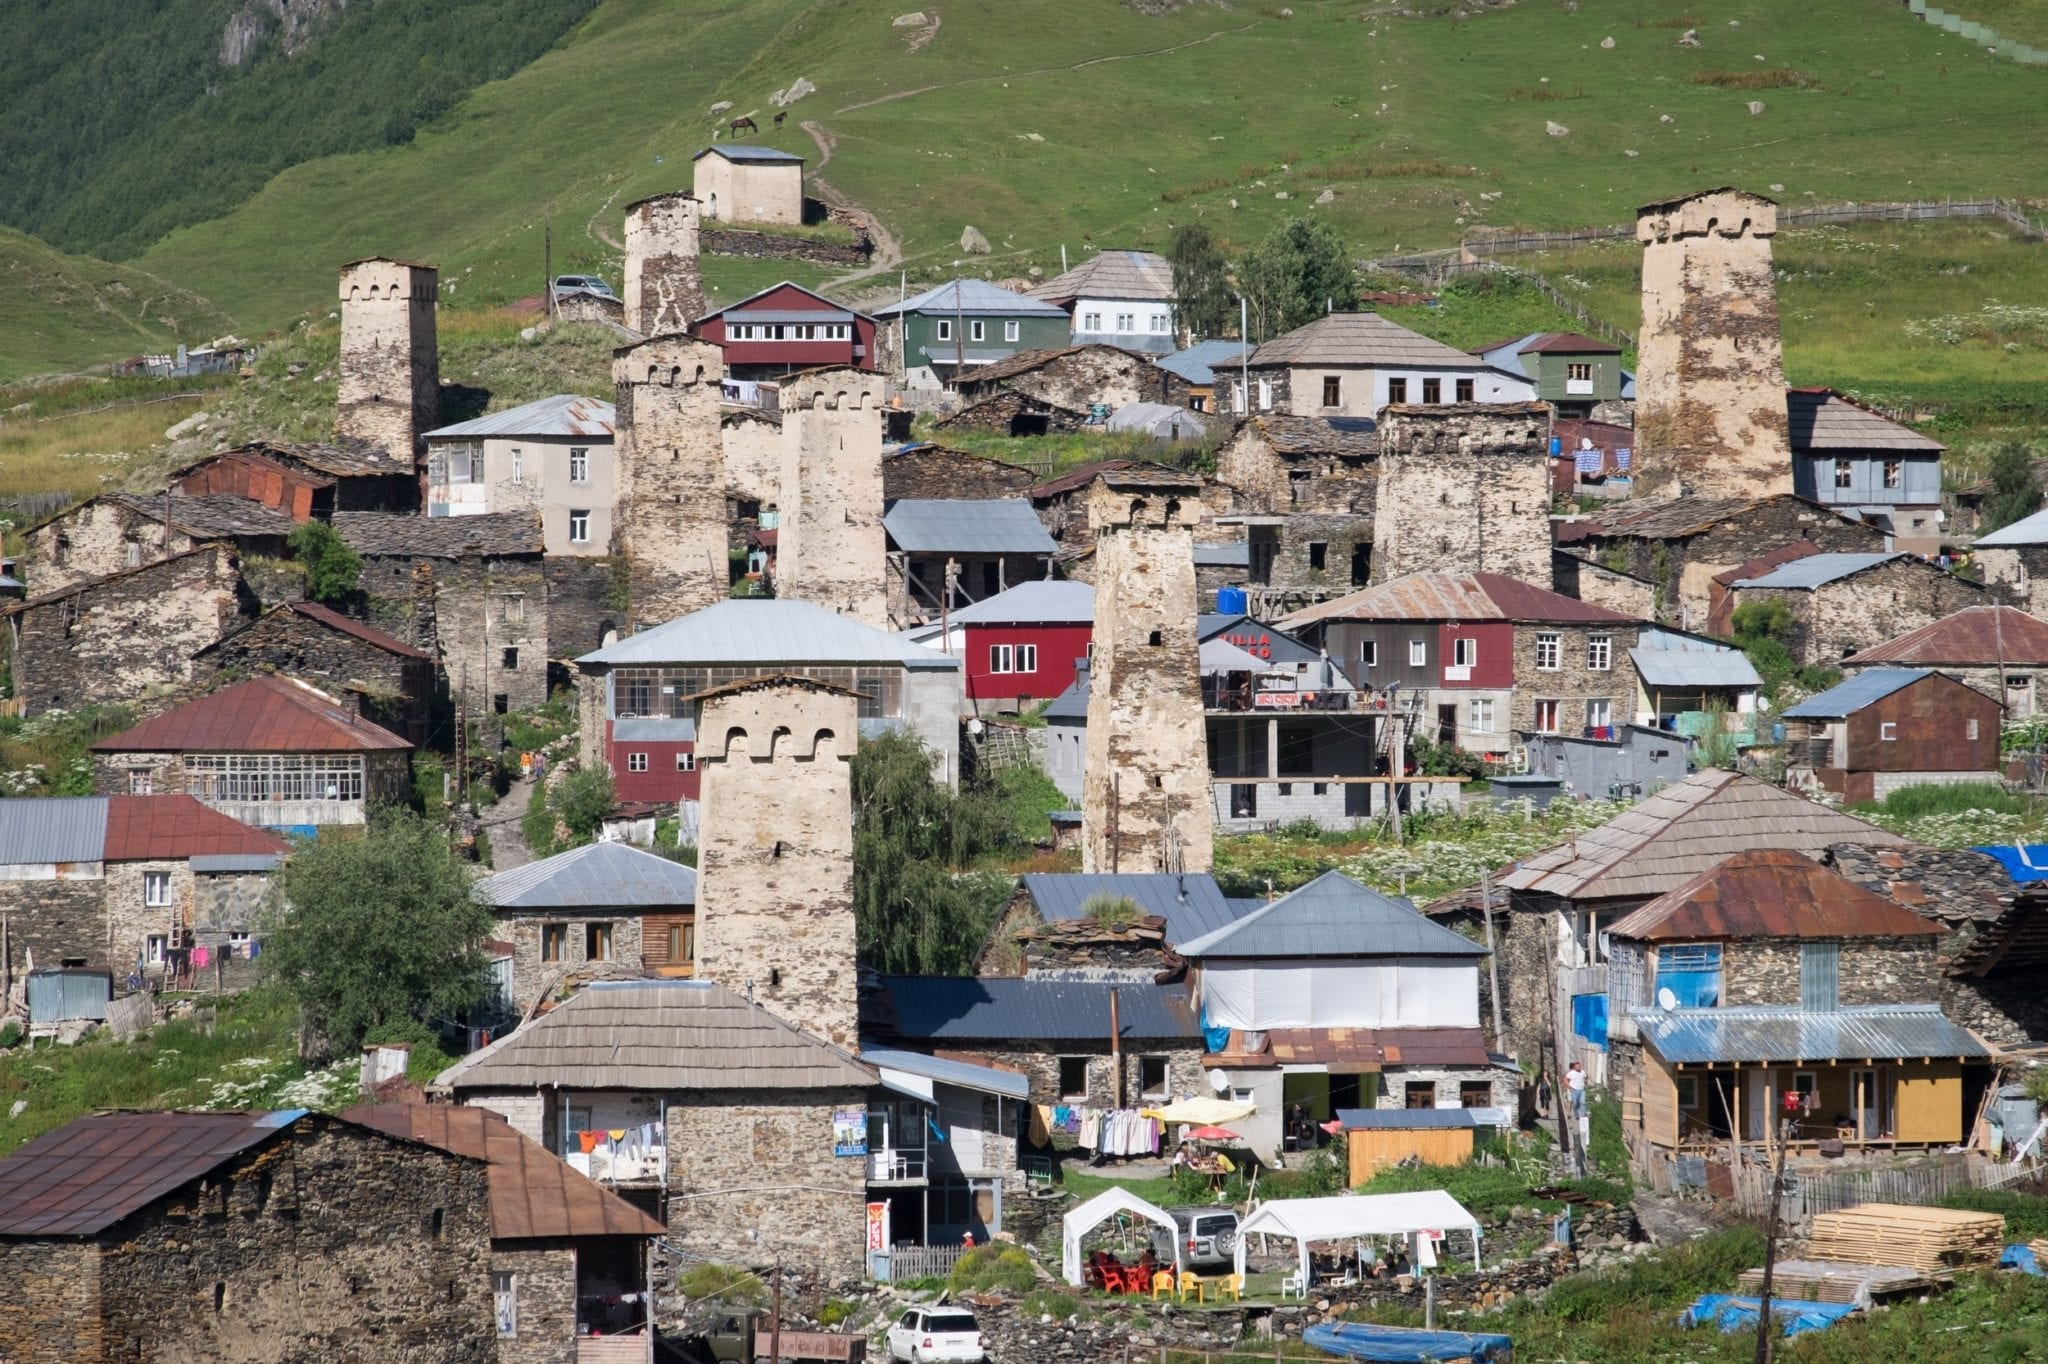 A close-up view of Ushguli's stone towers and village cafes.